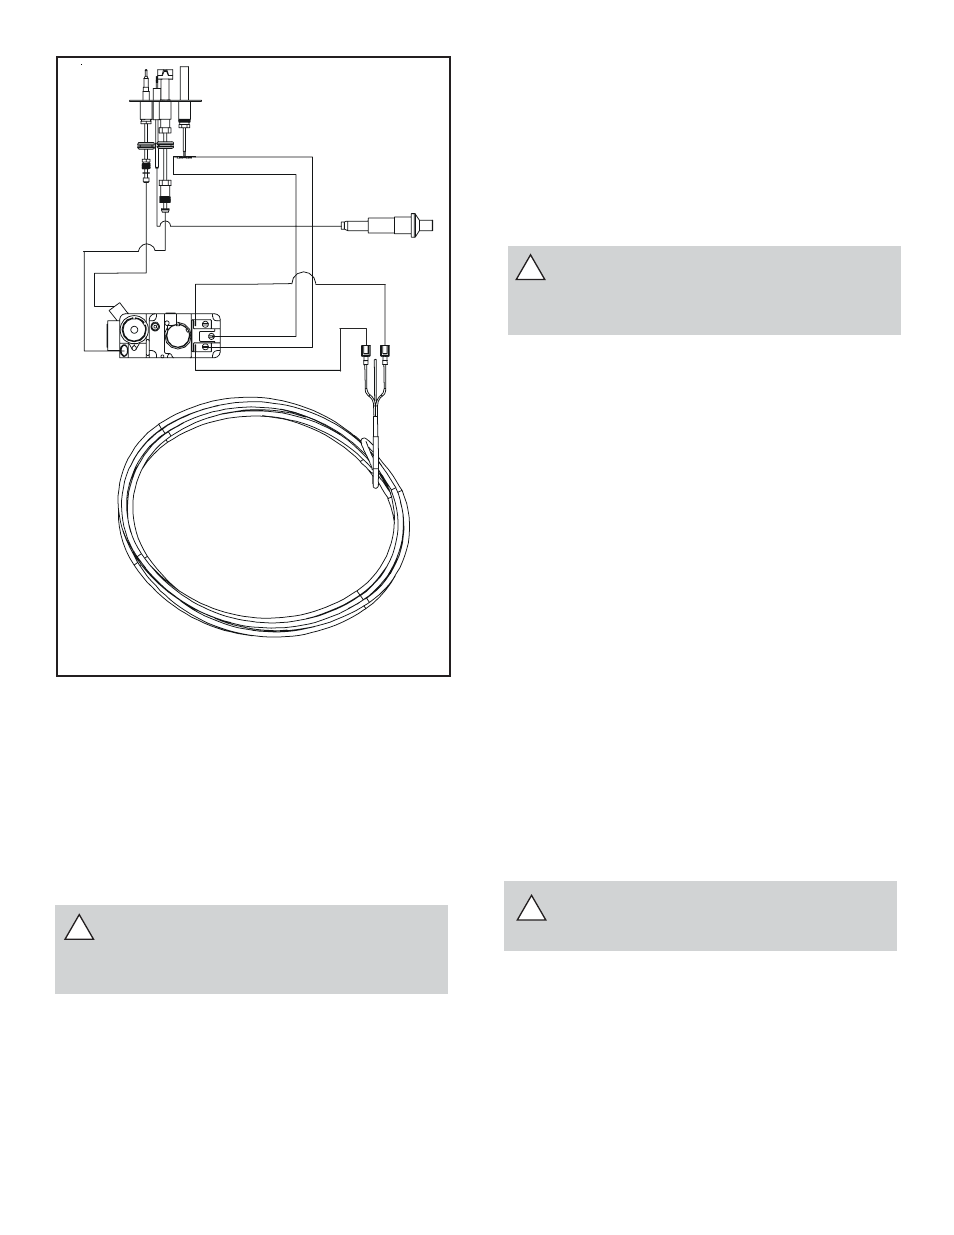 Step 8 Wiring The Fireplace Hearth And Home Technologies Be 36 Gas Pack Diagram Cipi